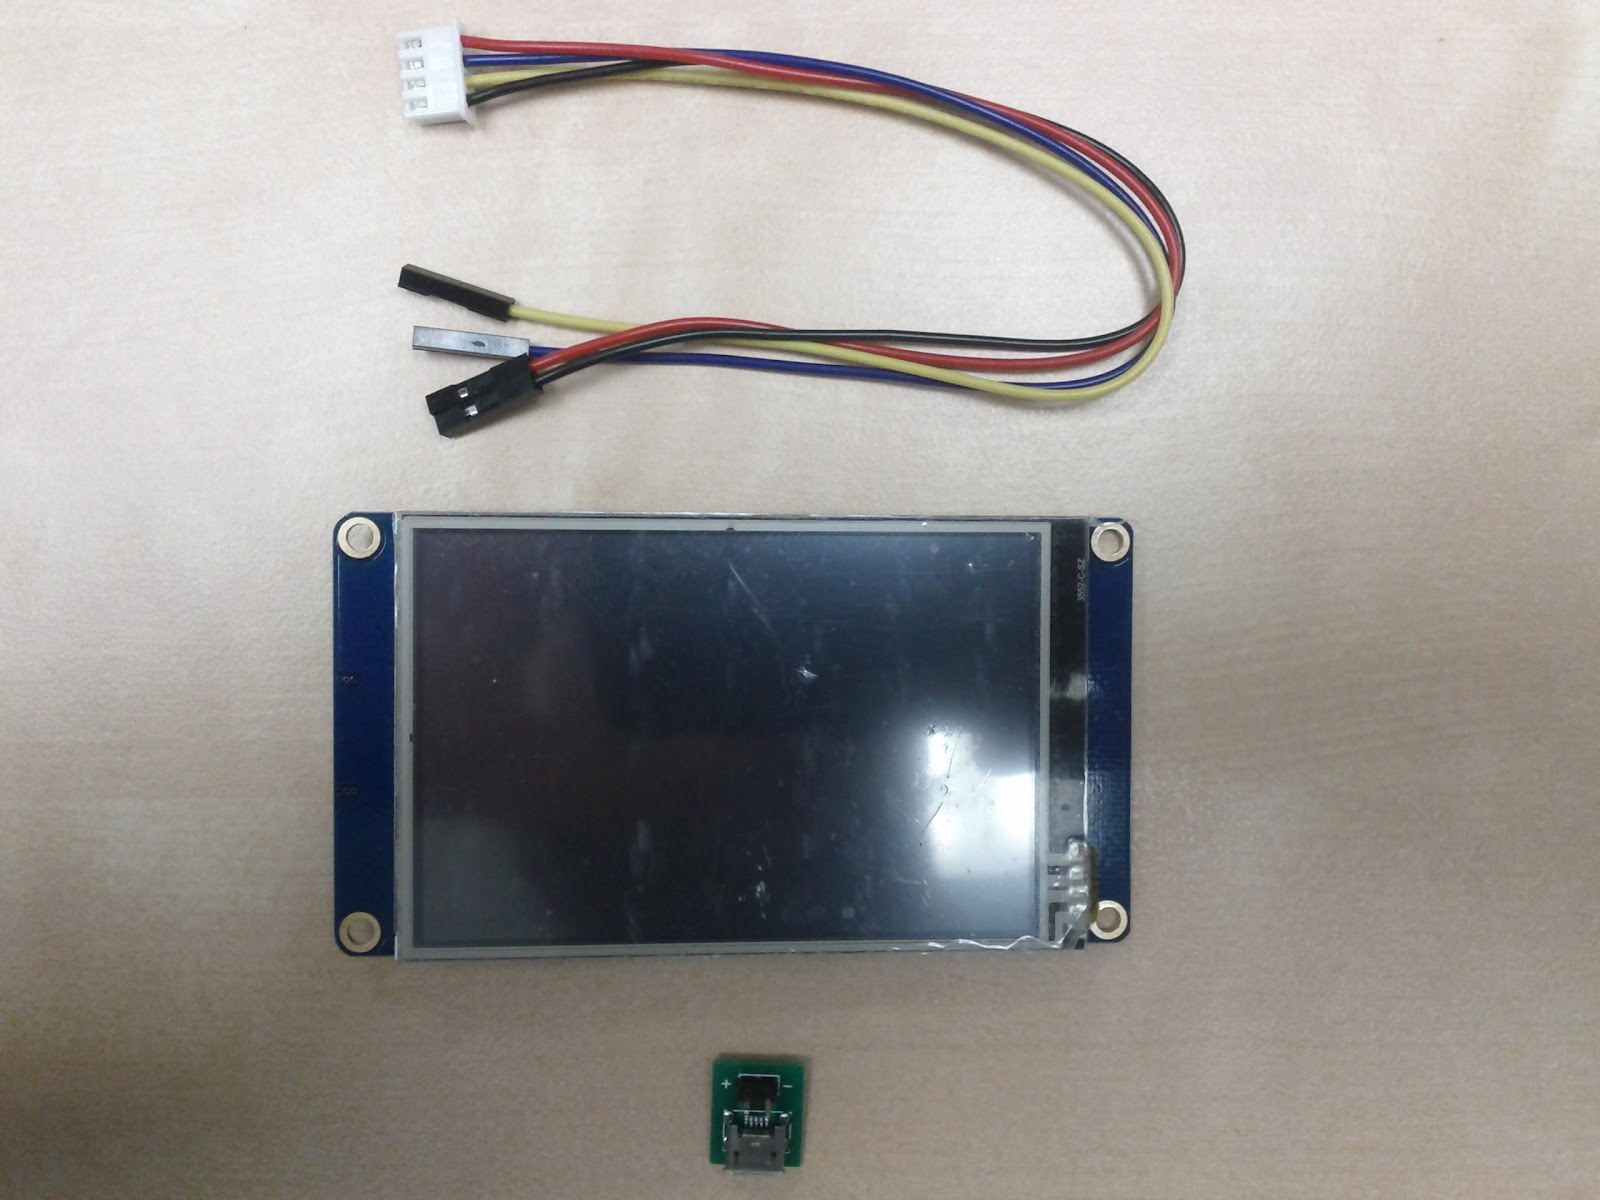 Nextion package and the contents. Screen, wire harness, and USB power connecor